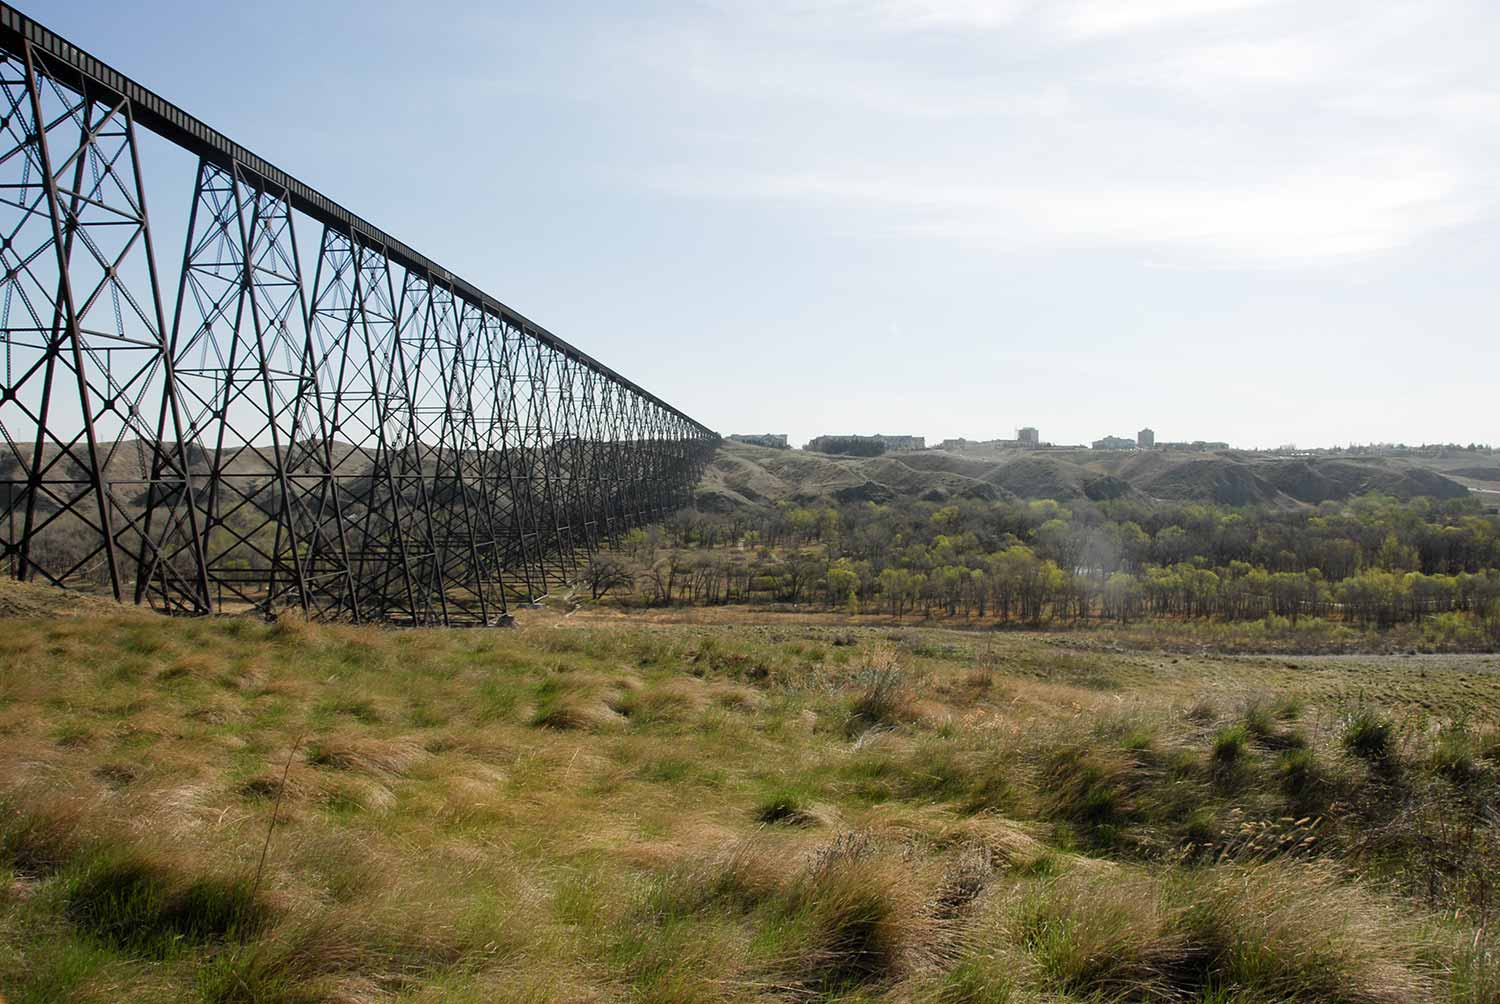 Lethbridge High Level Train Bridge